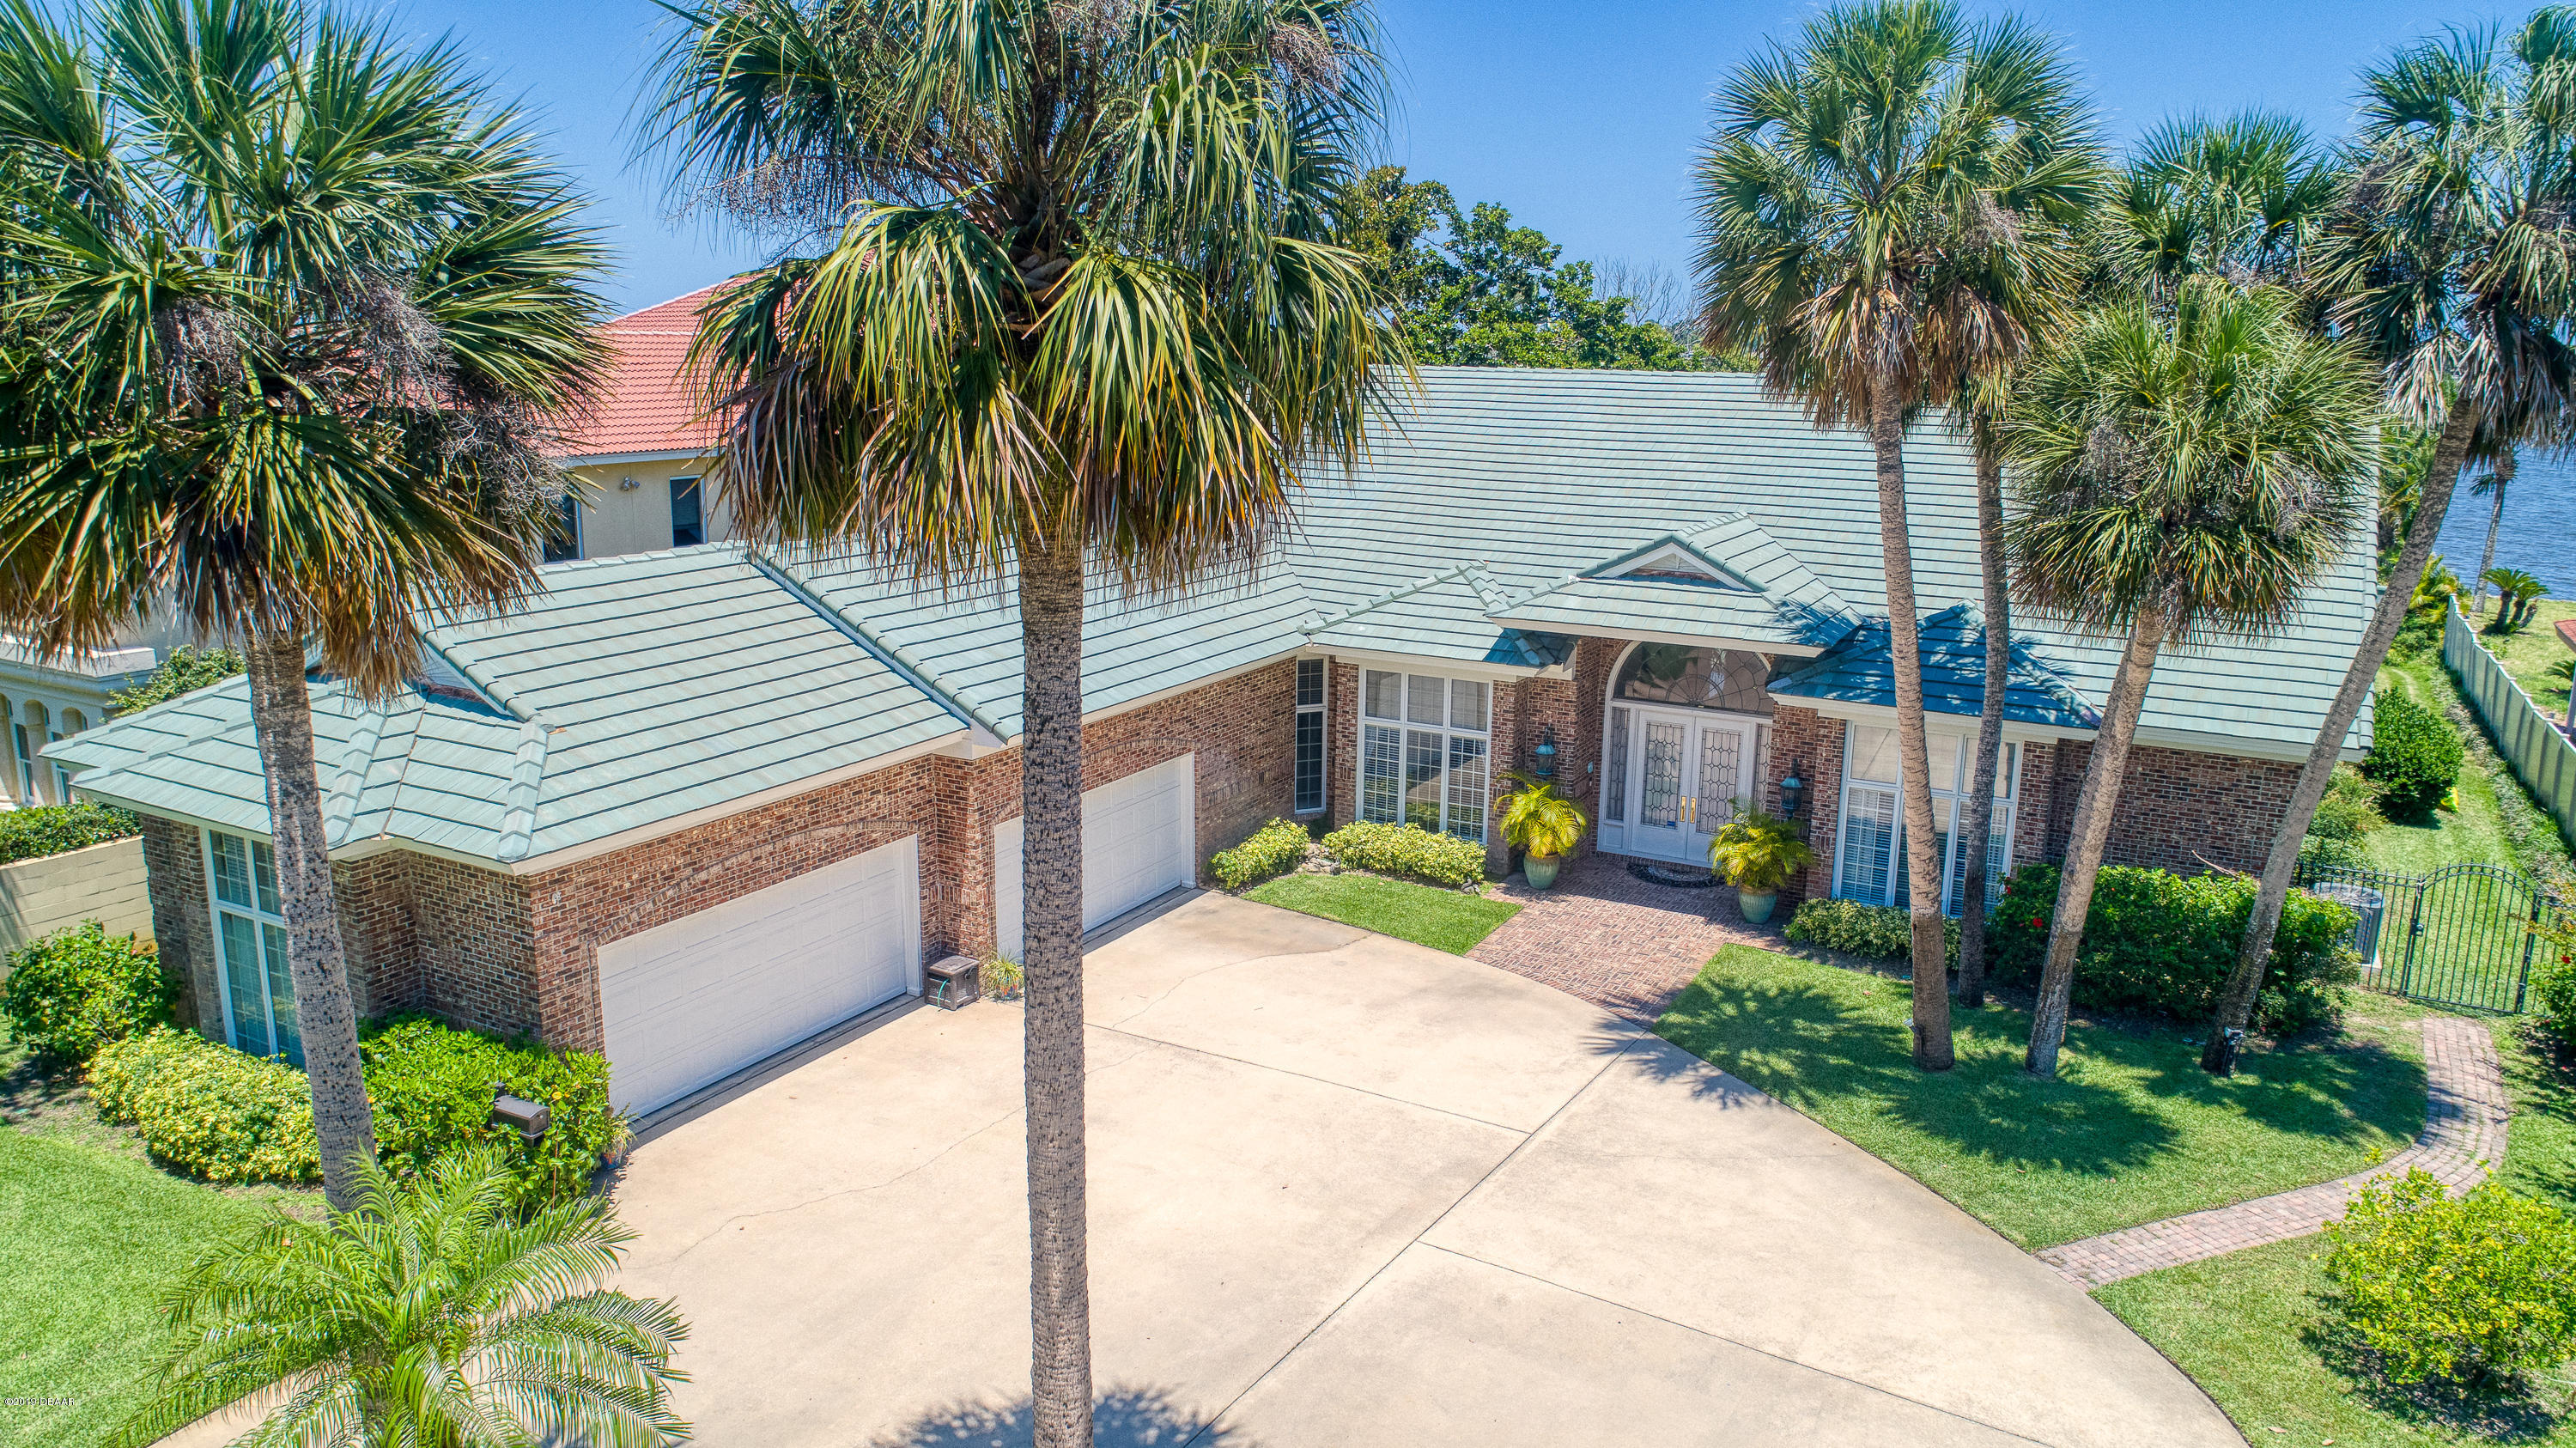 657 N Beach Street, Ormond Beach, Florida